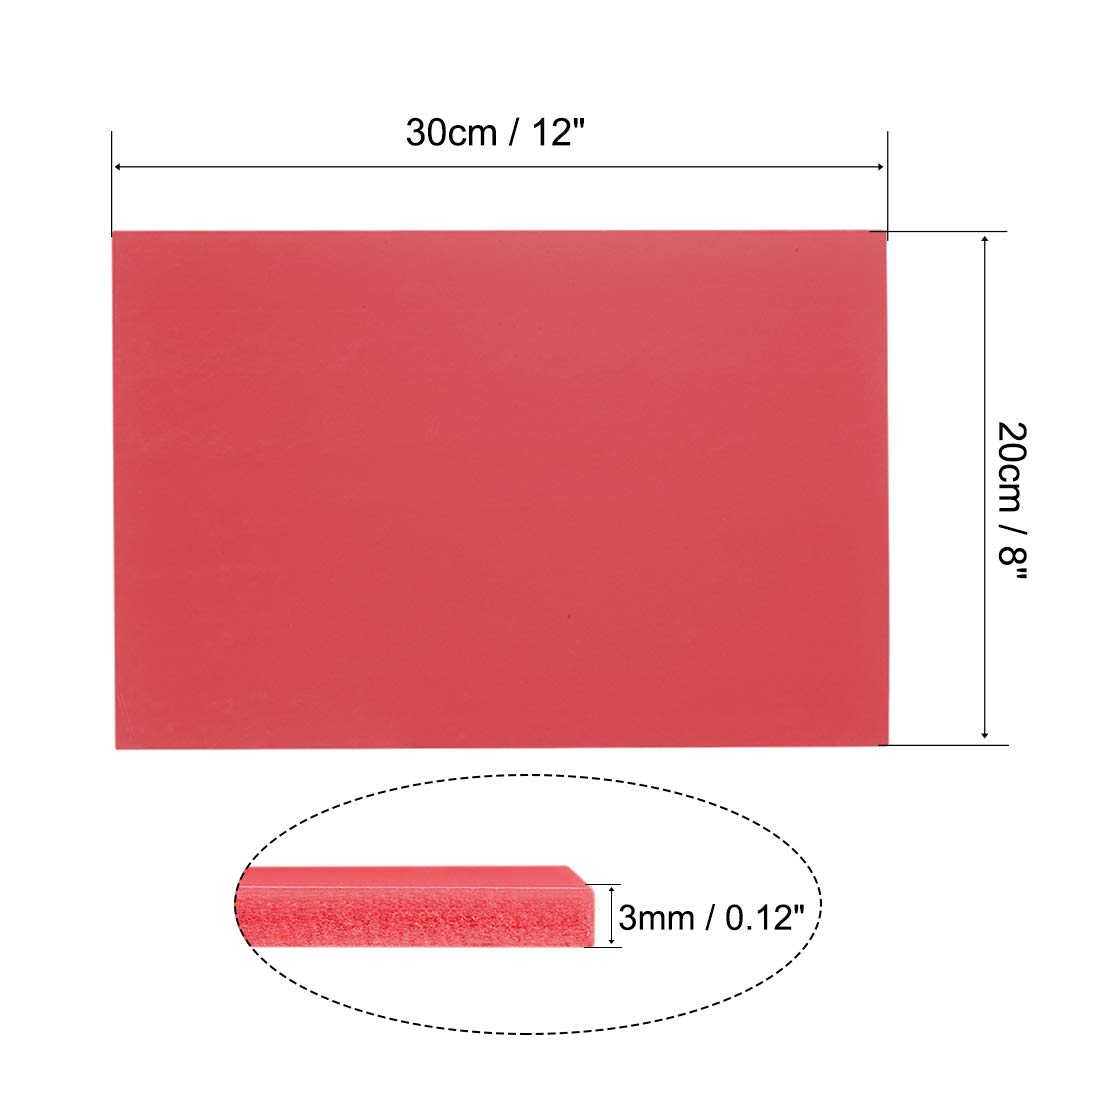 """Artsand Crafts,Framing,Display uxcell PVC Foam Board Sheet,3mm T x 8W x 12/""""L,Red,Double Sided,Expanded PVC Sheet,for Presentations,Signboards"""